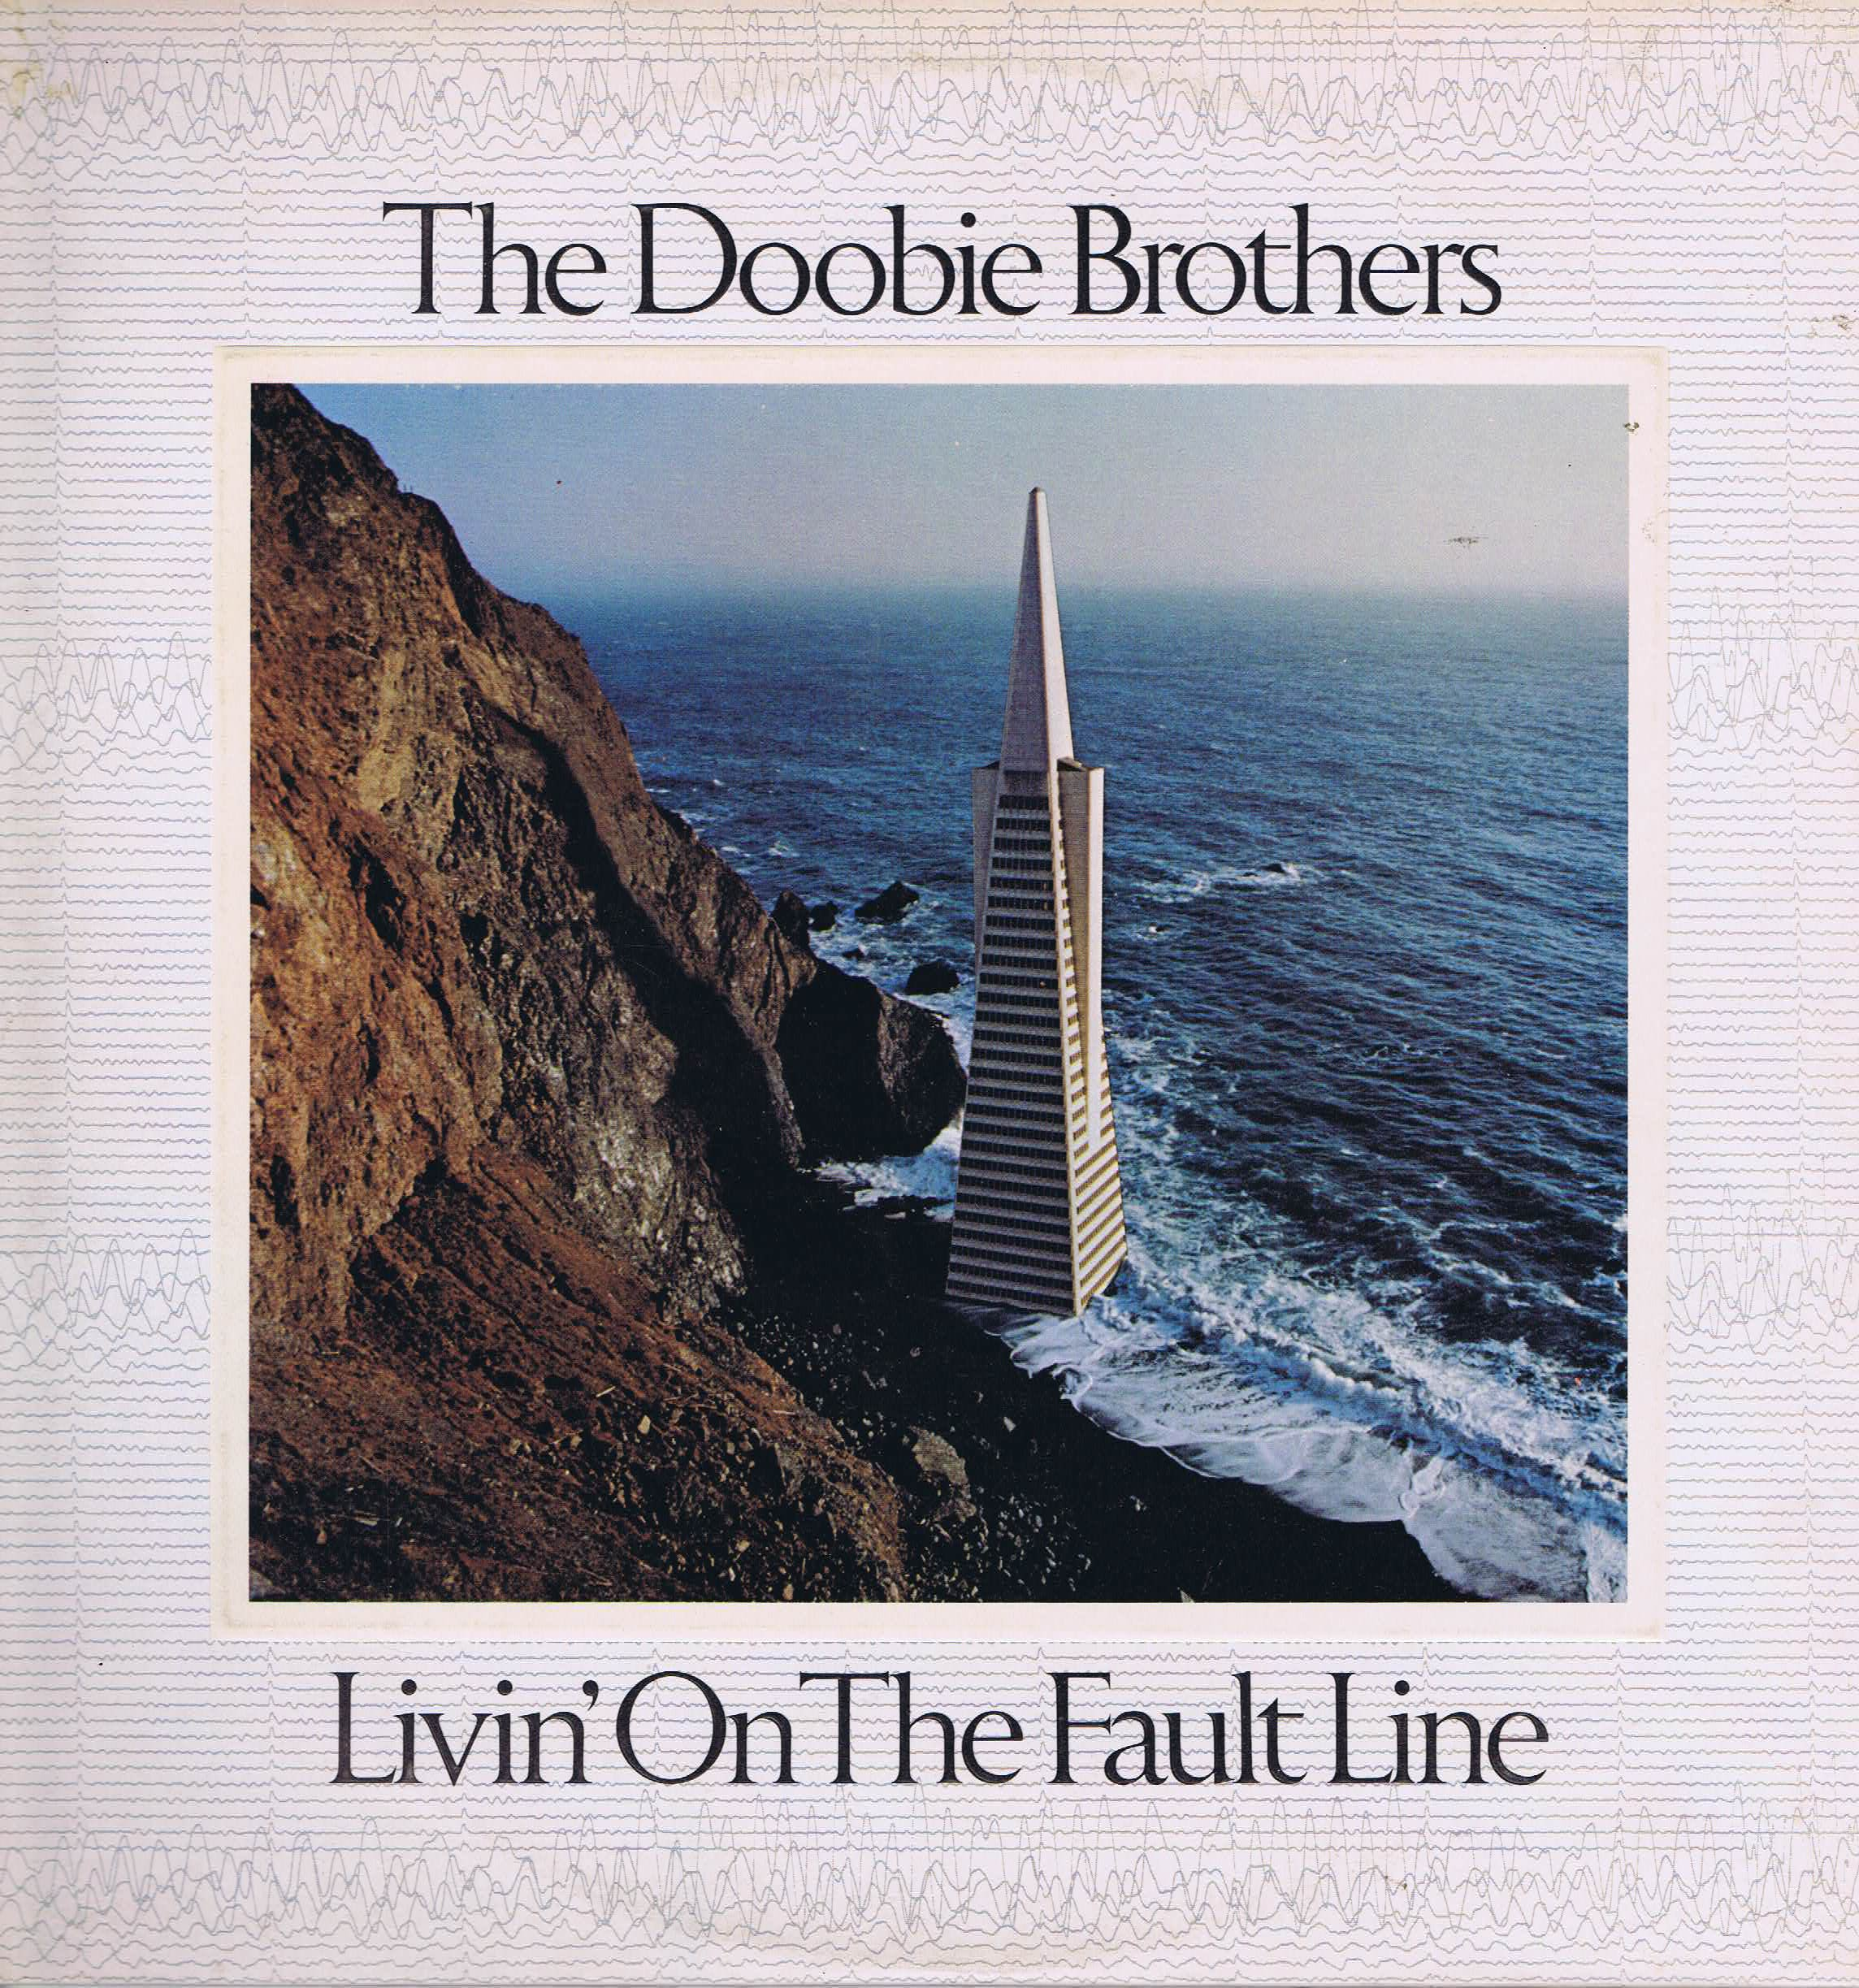 The Doobie Brothers - Livin' On The Fault Line - K56383 - A1/B1 - LP Vinyl Record